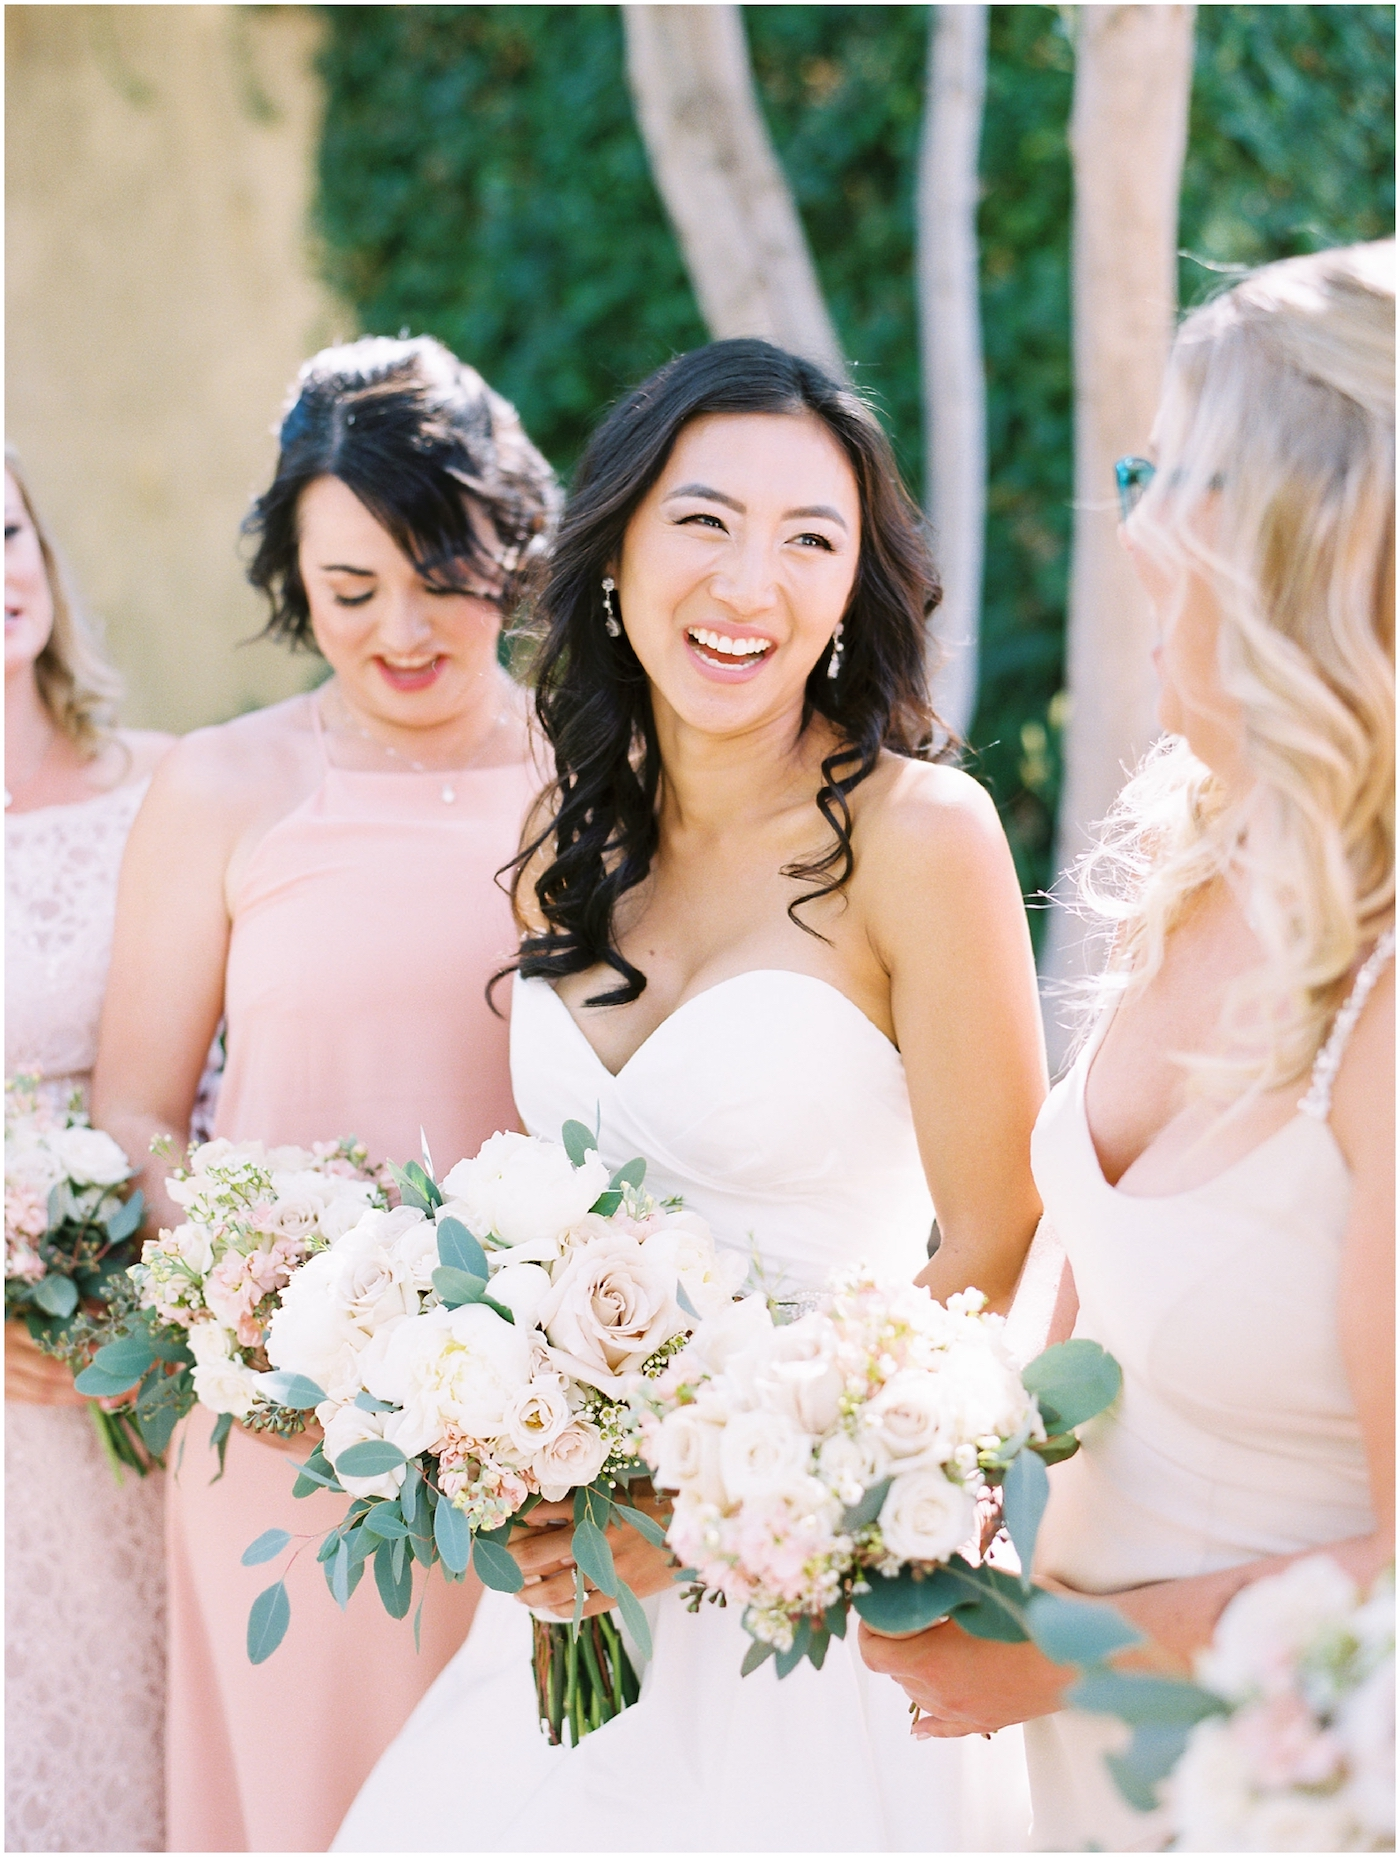 Sassi Wedding | Tasha Brady Photography